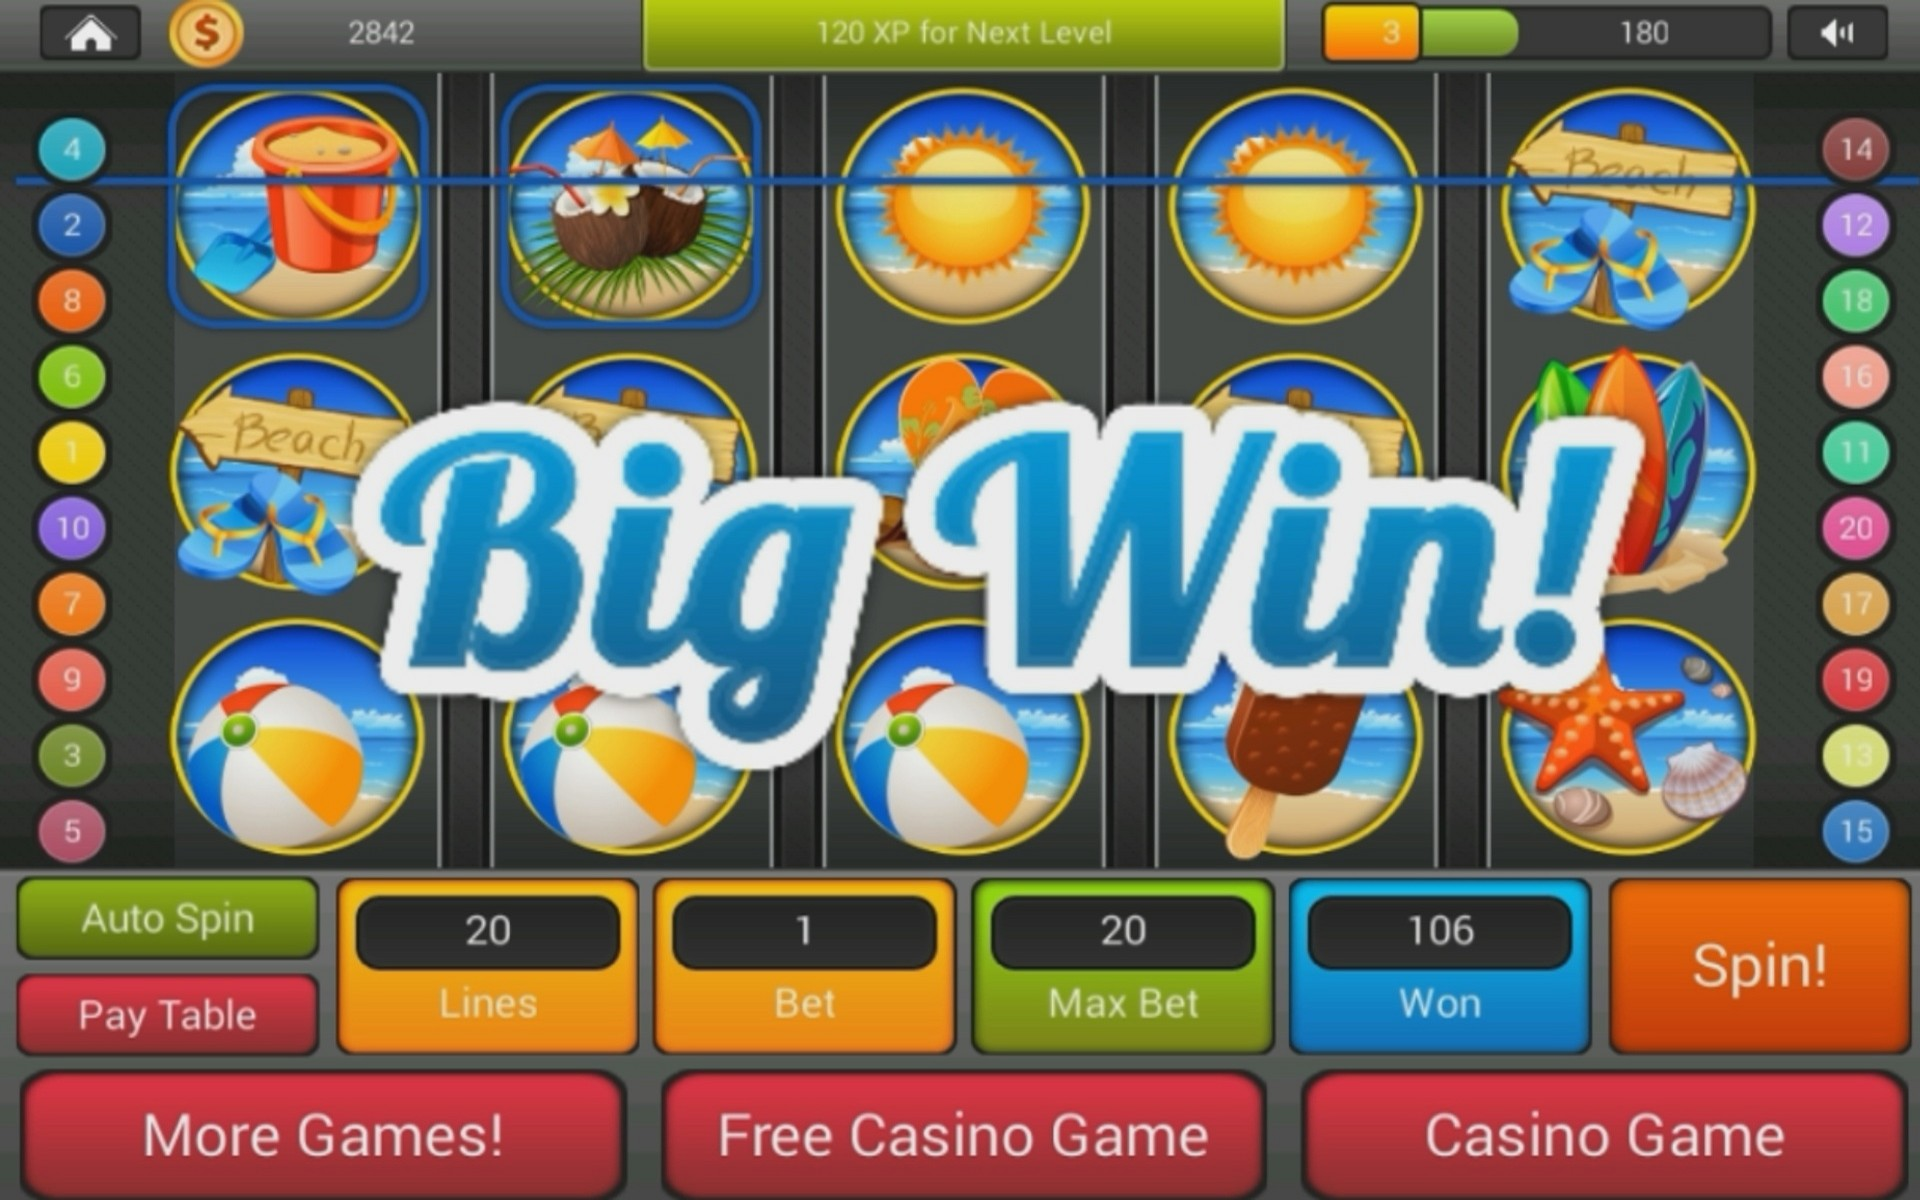 Brilliants on Fire Slot - Play for Free in Your Web Browser